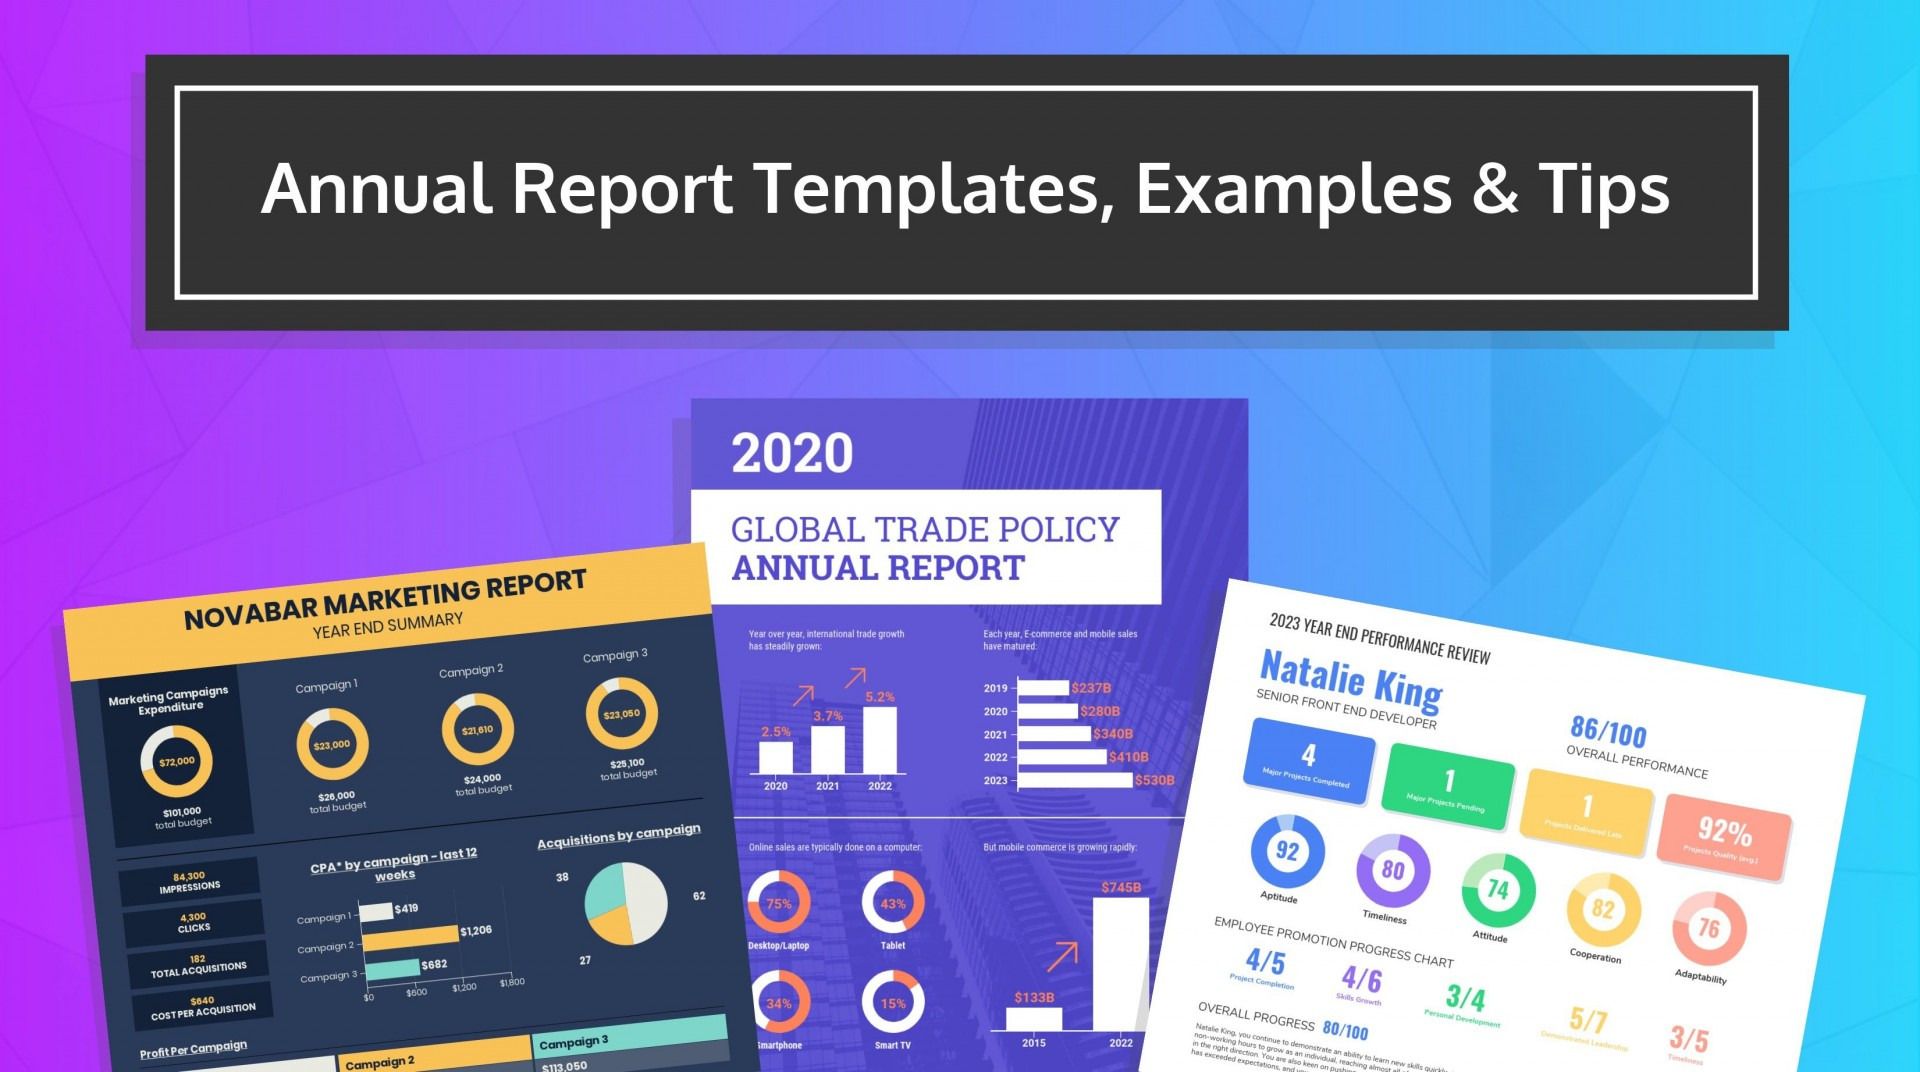 003 Amazing Annual Report Design Template Sample  Templates Word Timeles Free Download In1920